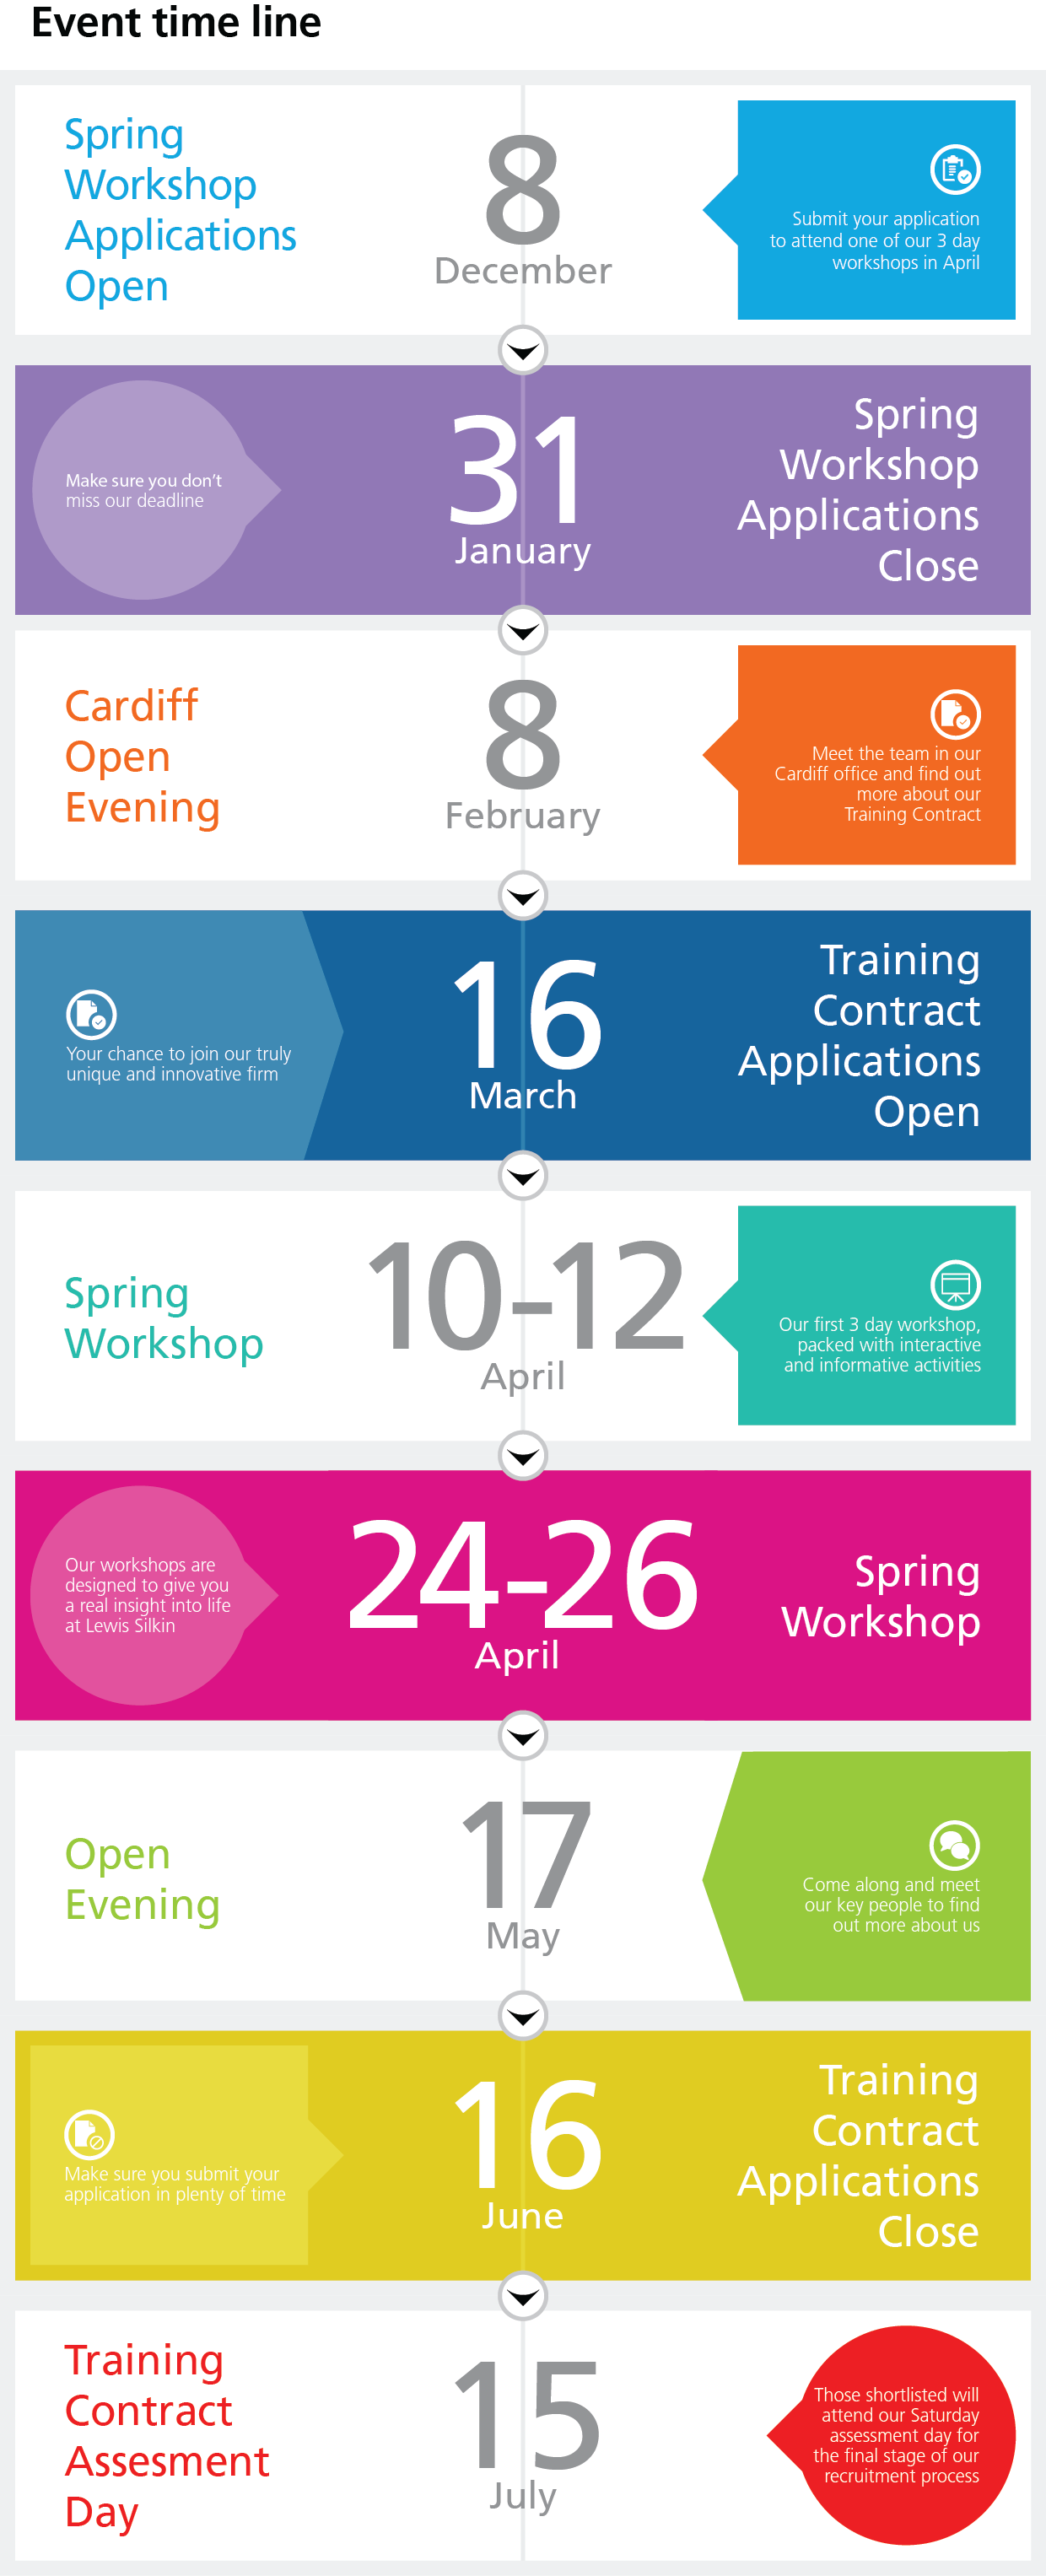 Lewis Silkin Trainee application Timeline_Graphic 19 01 2017